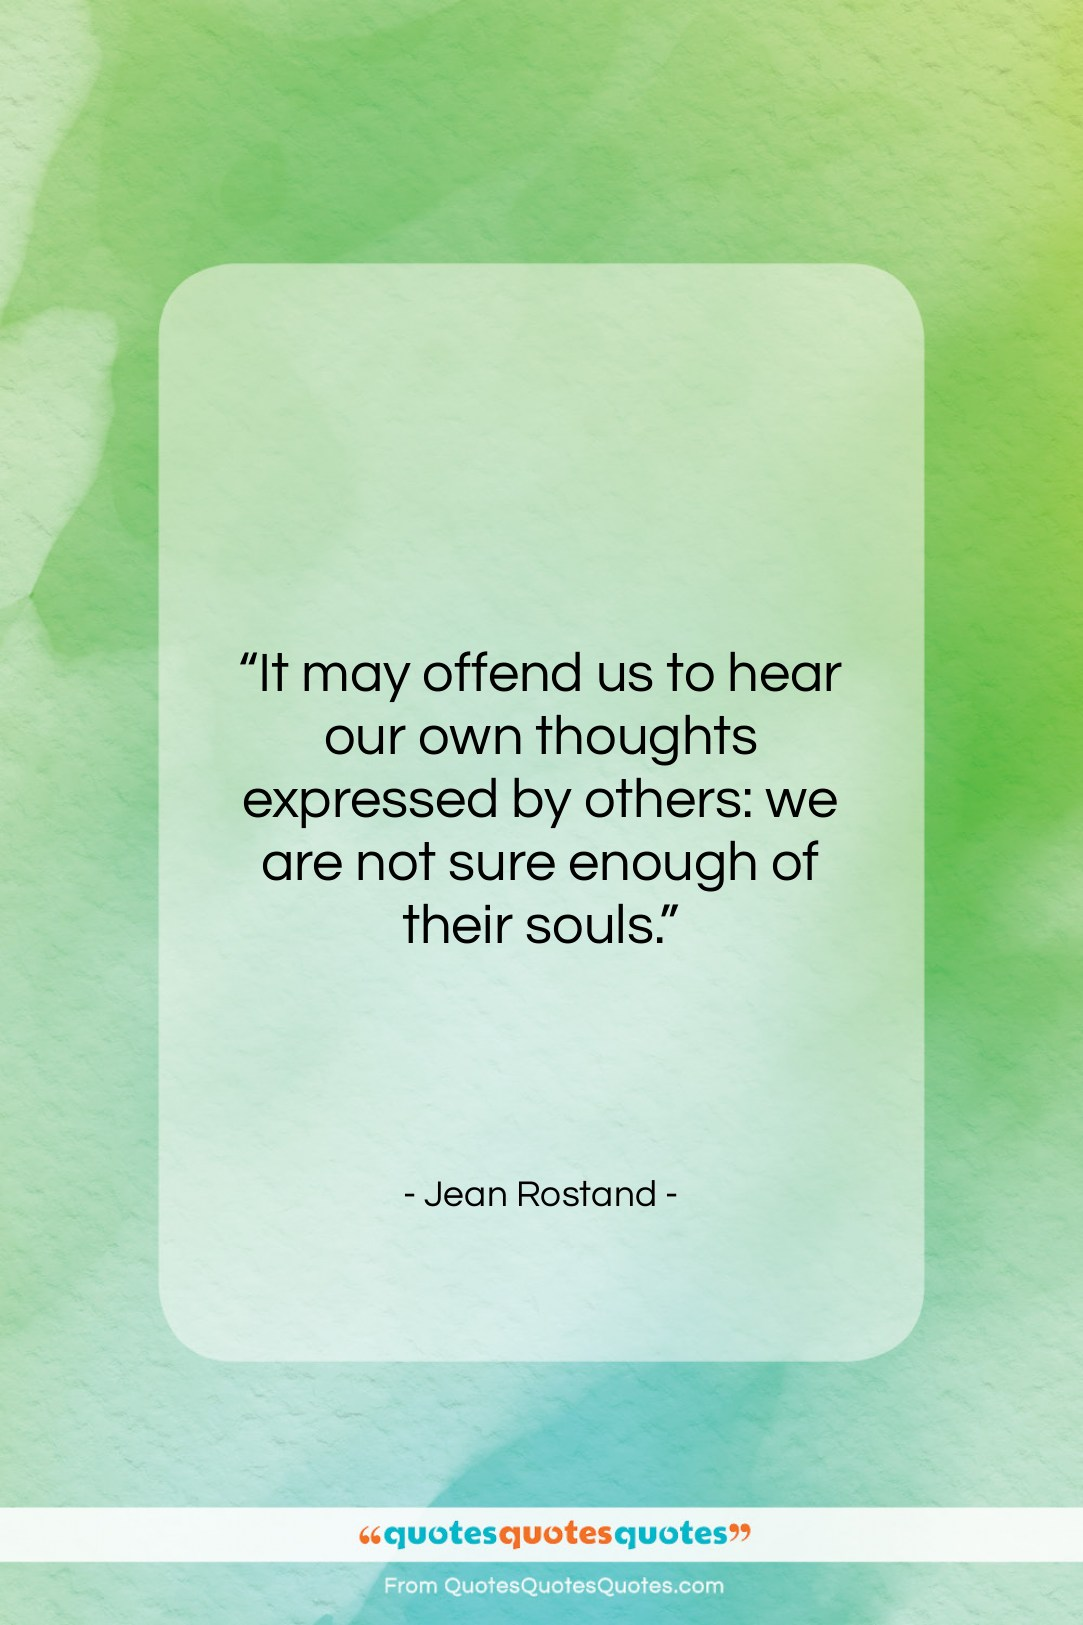 """Jean Rostand quote: """"It may offend us to hear our…""""- at QuotesQuotesQuotes.com"""